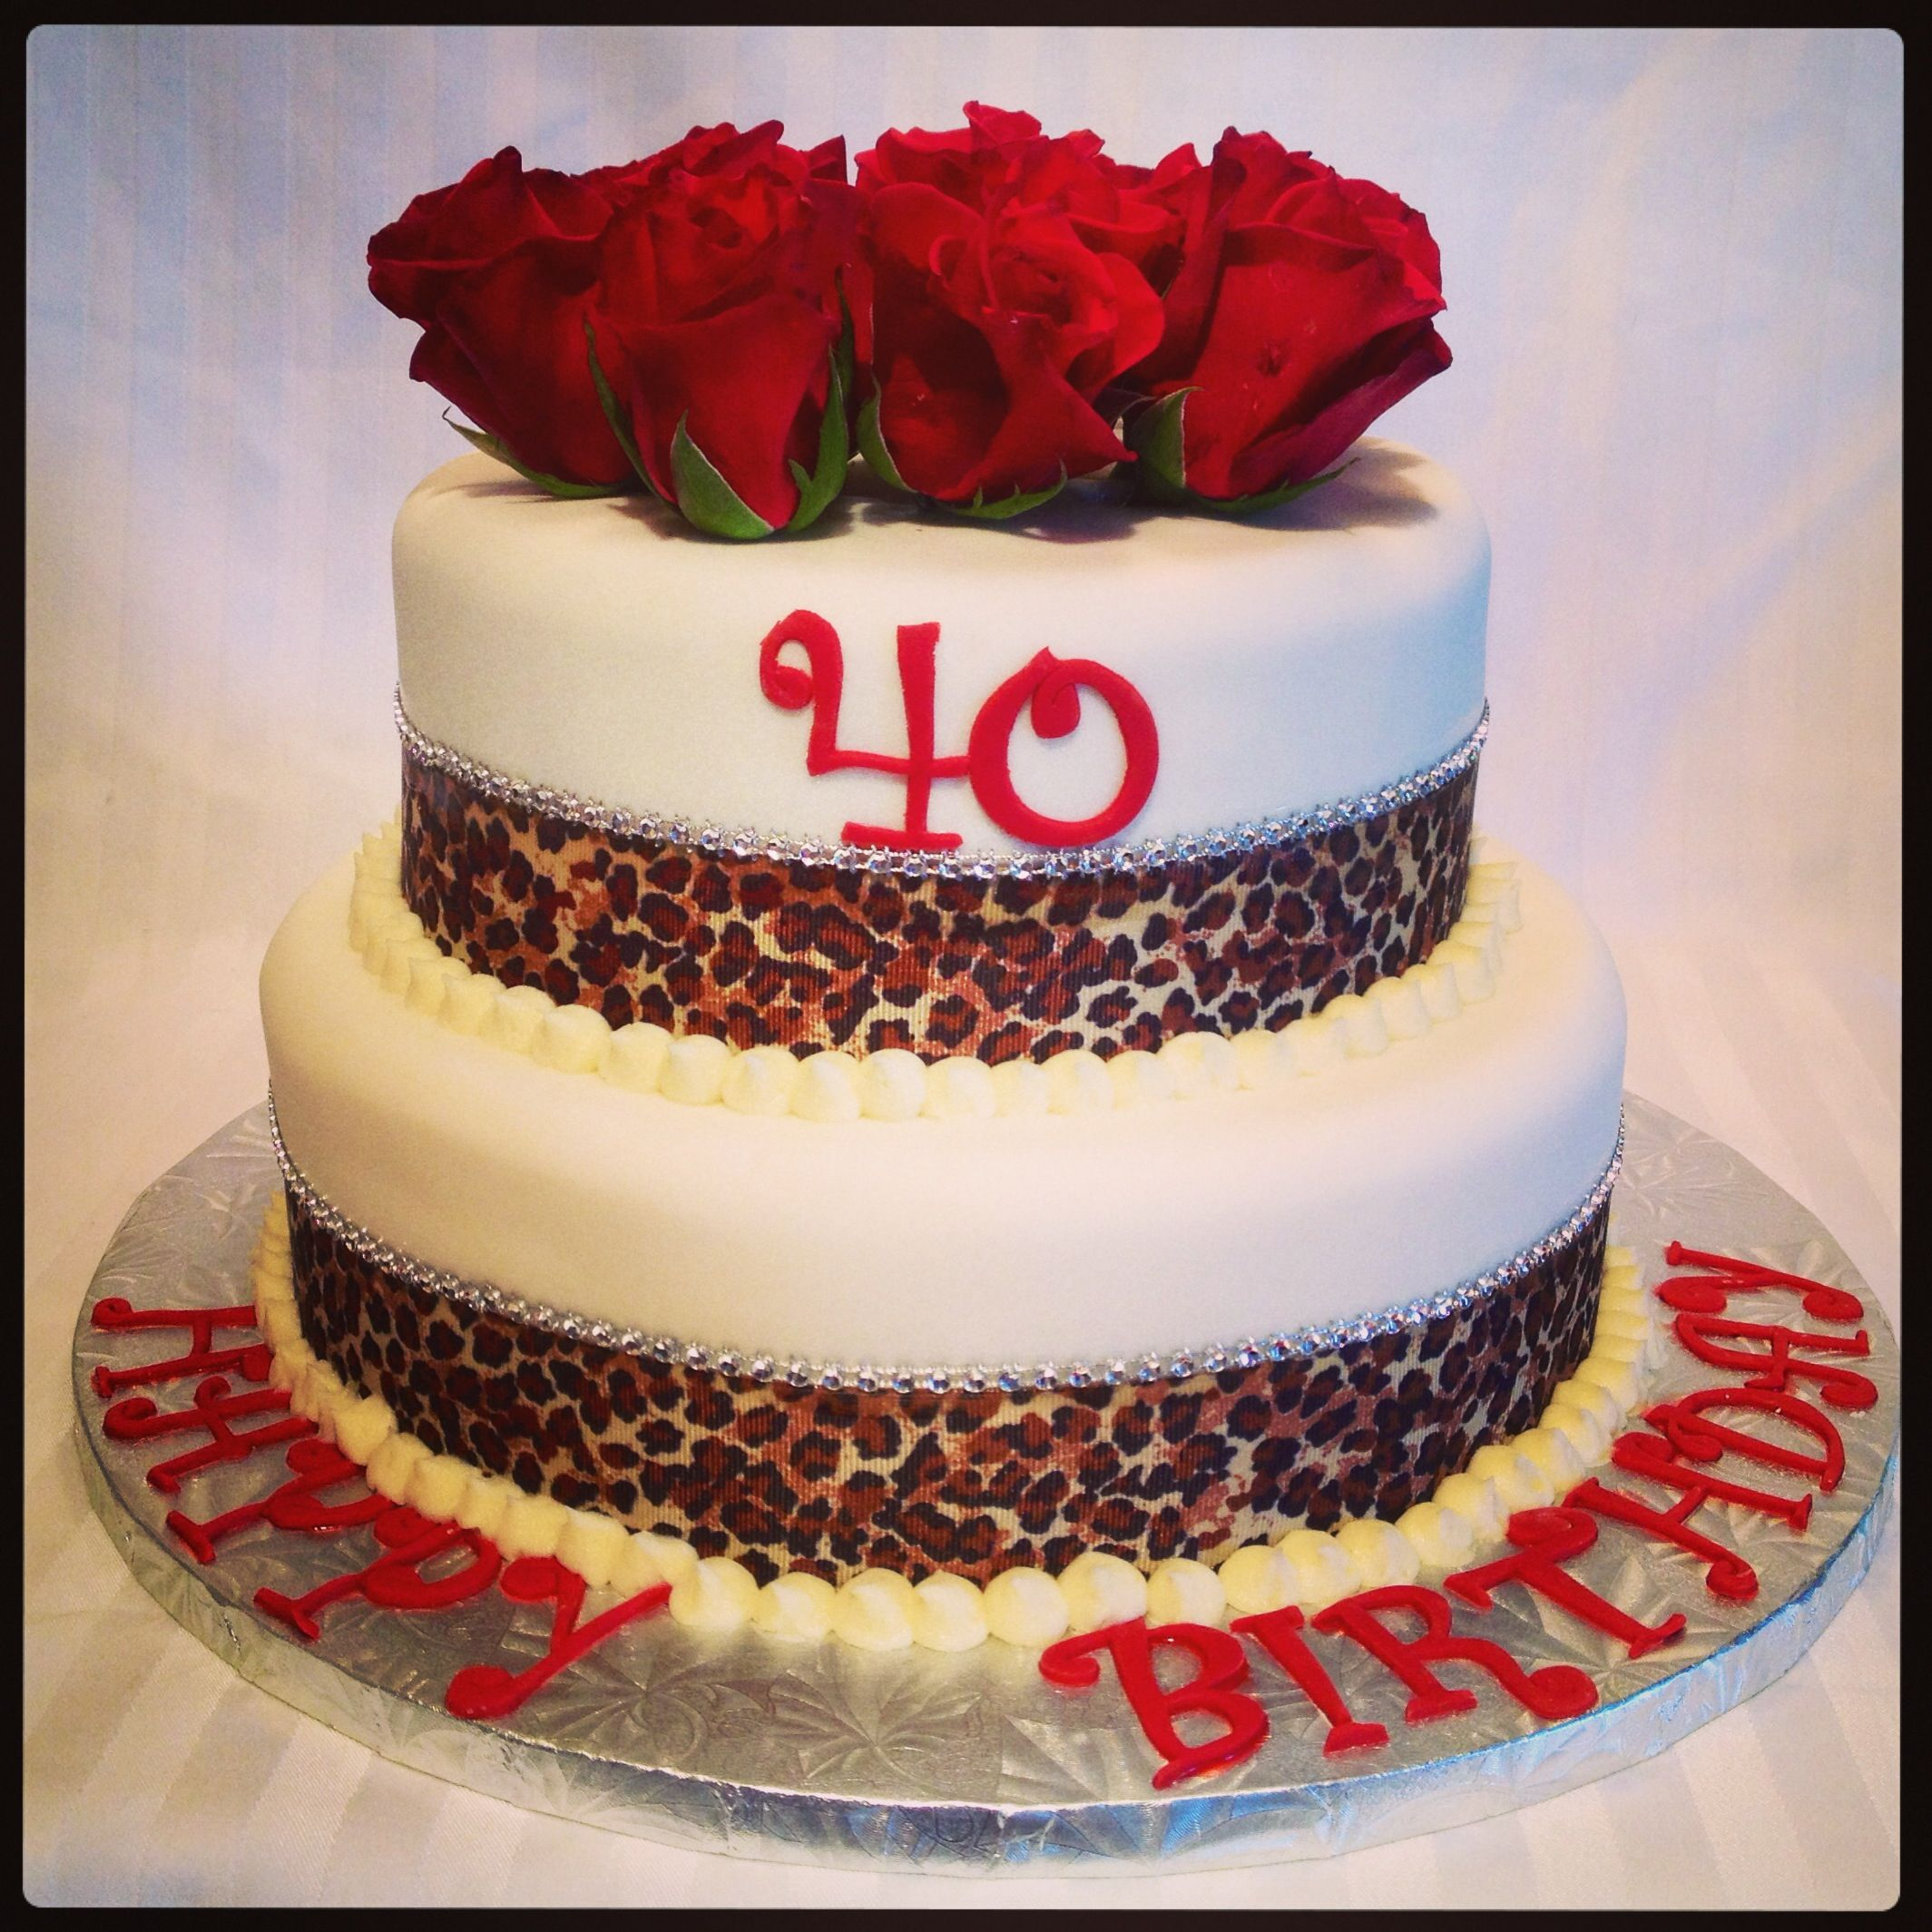 Cougar 2 Tier 40th Birthday Cake With Fresh Roses